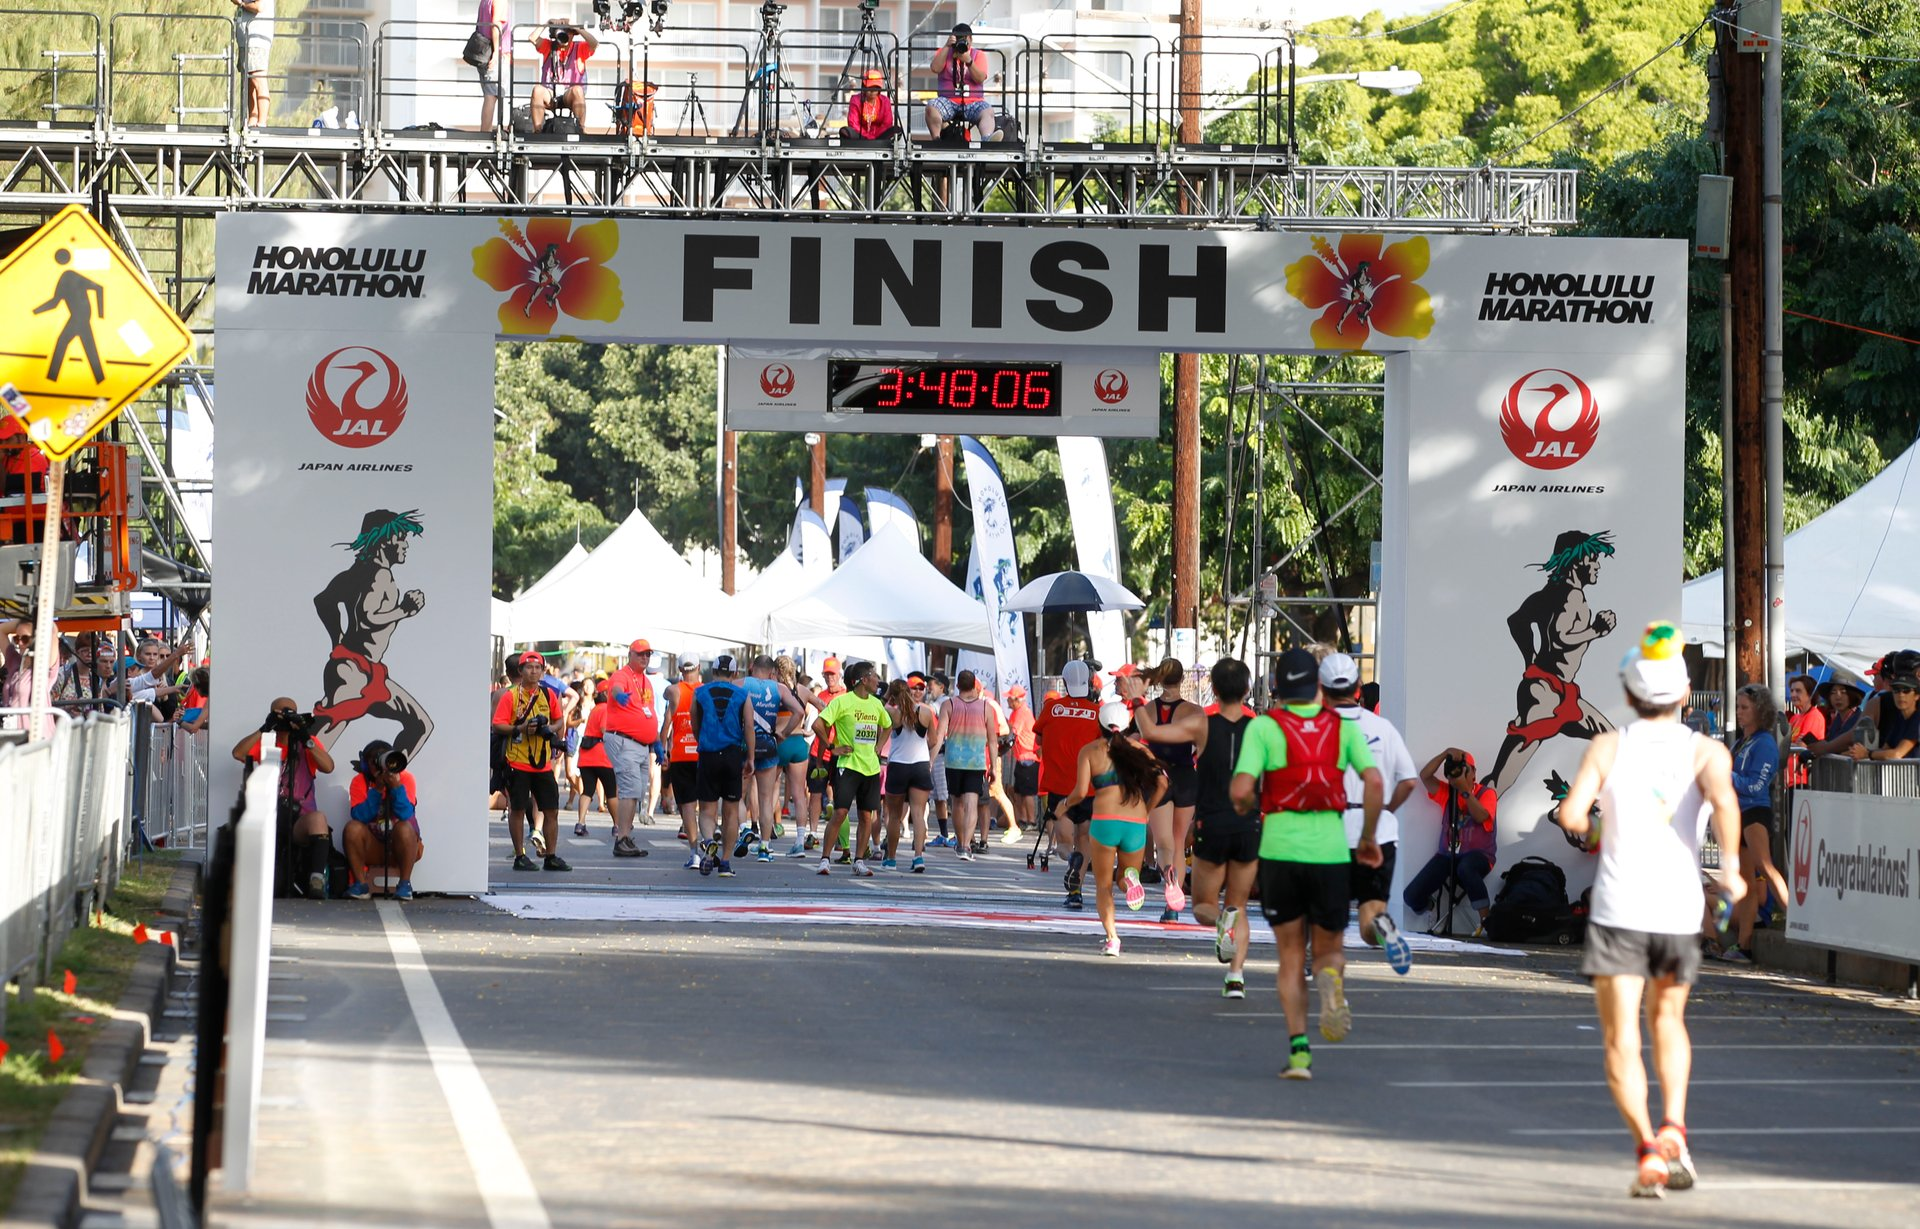 Best time to see Honolulu Marathon in Hawaii 2019